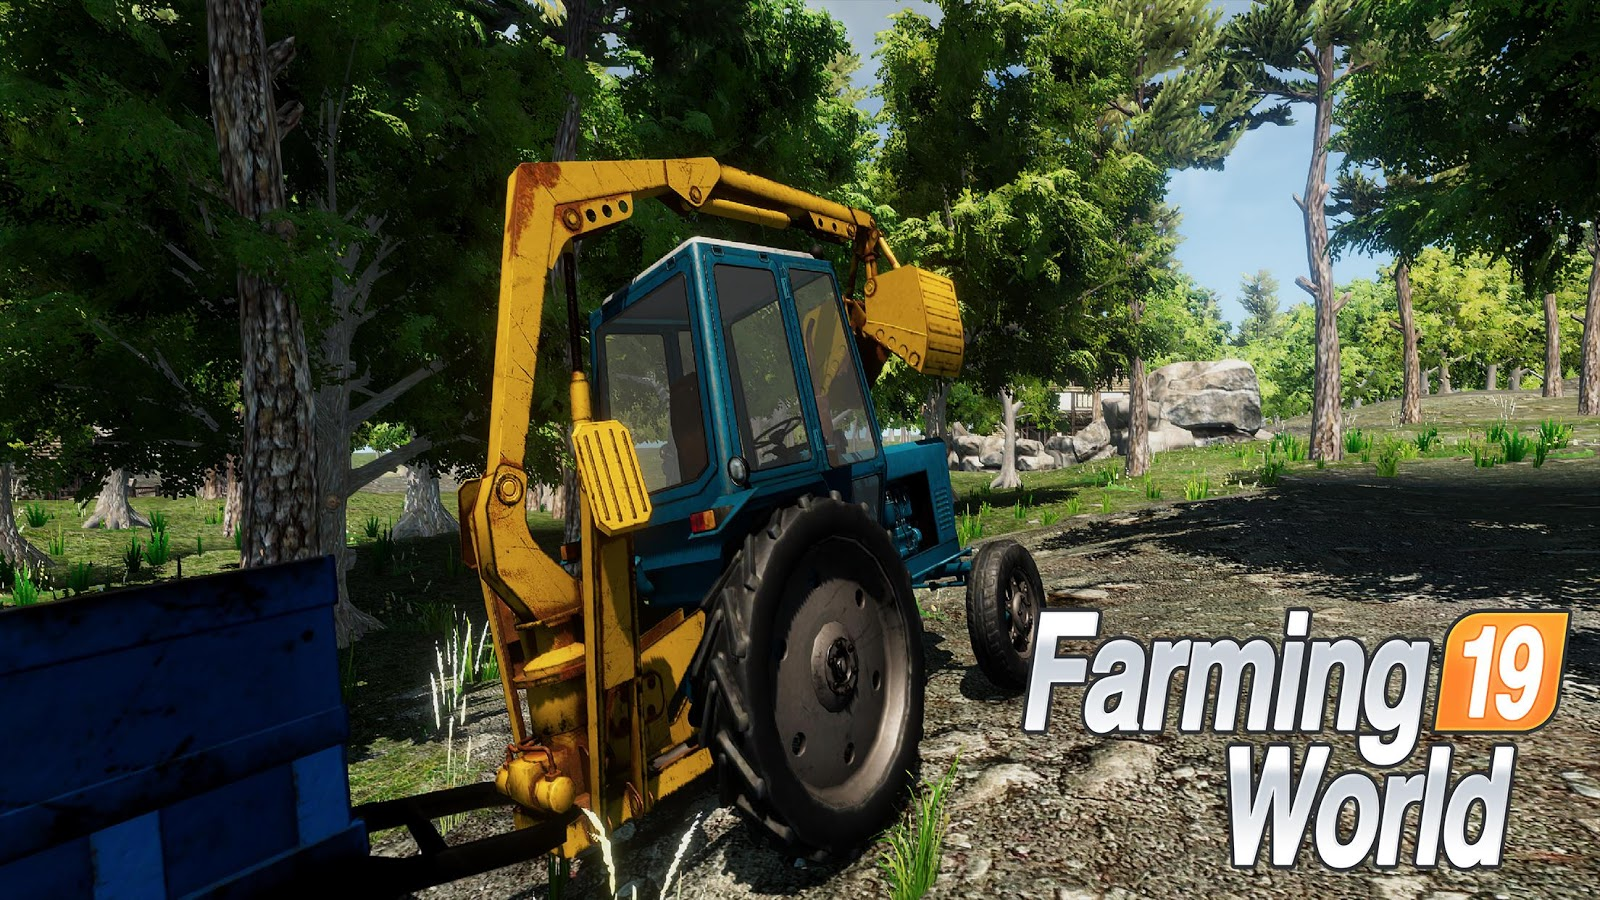 Farming World 2019 2 APK Download - Android Simulation Games